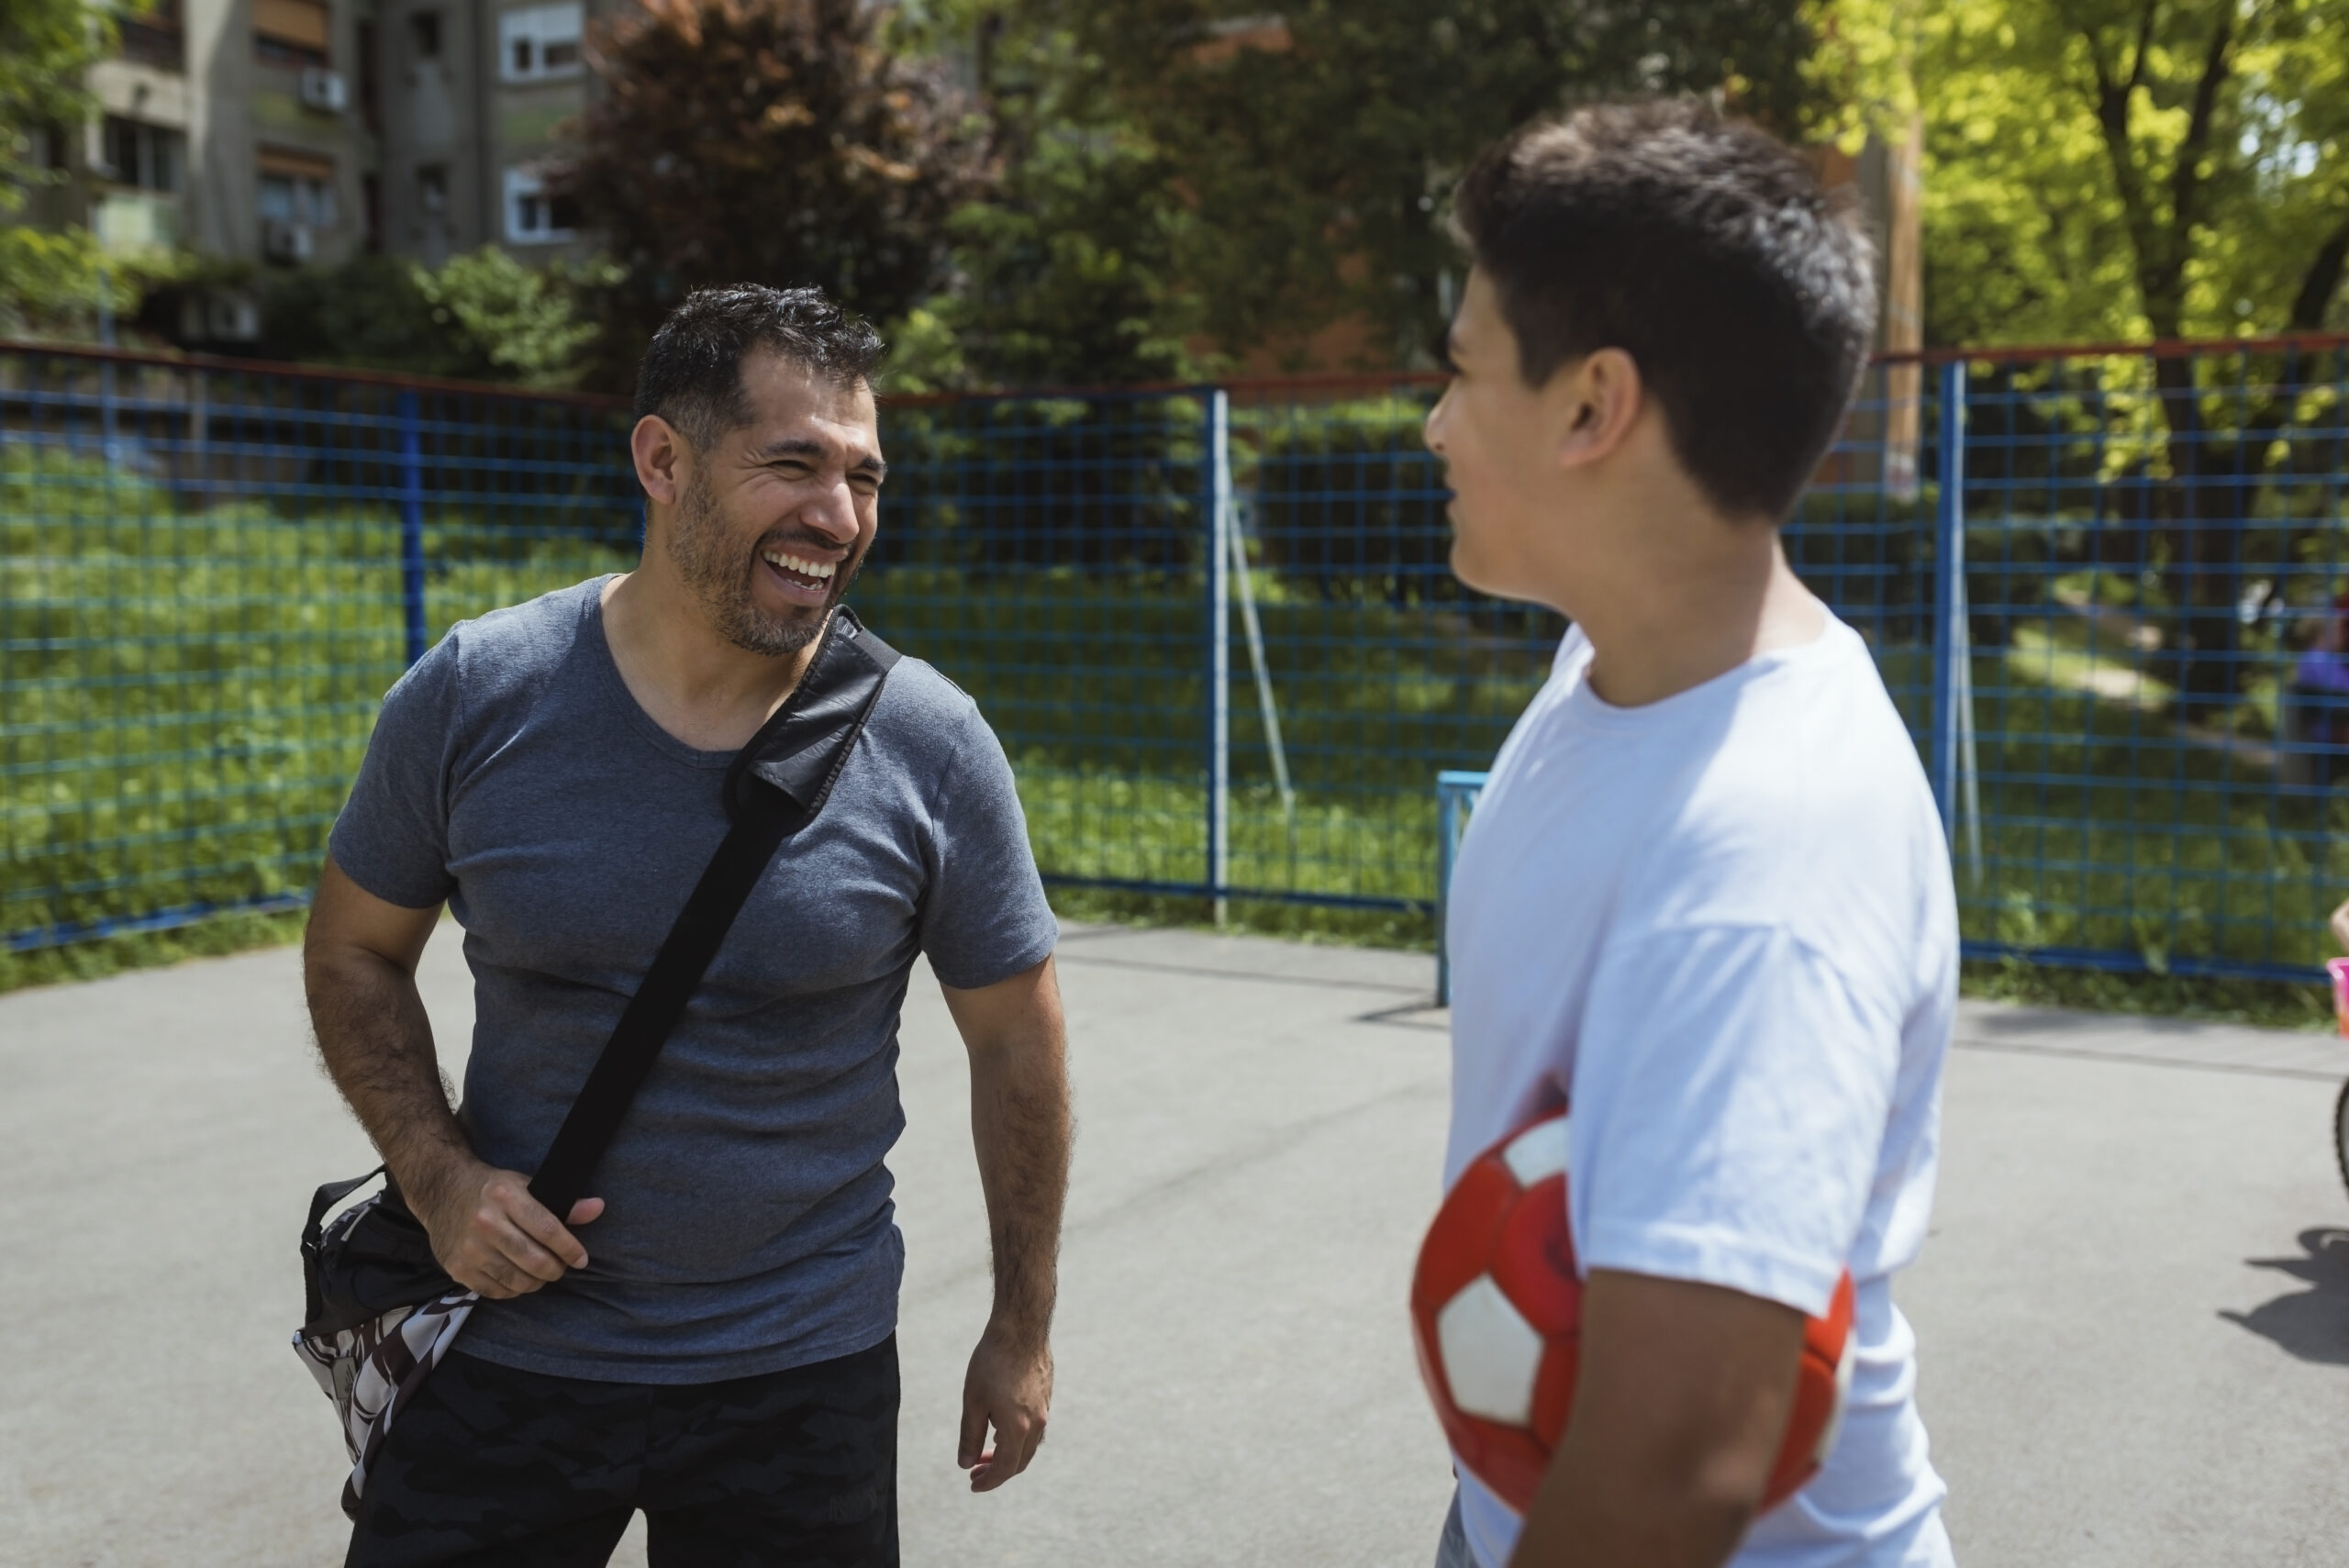 Father and son spending quality time together.Playing soccer in public park.